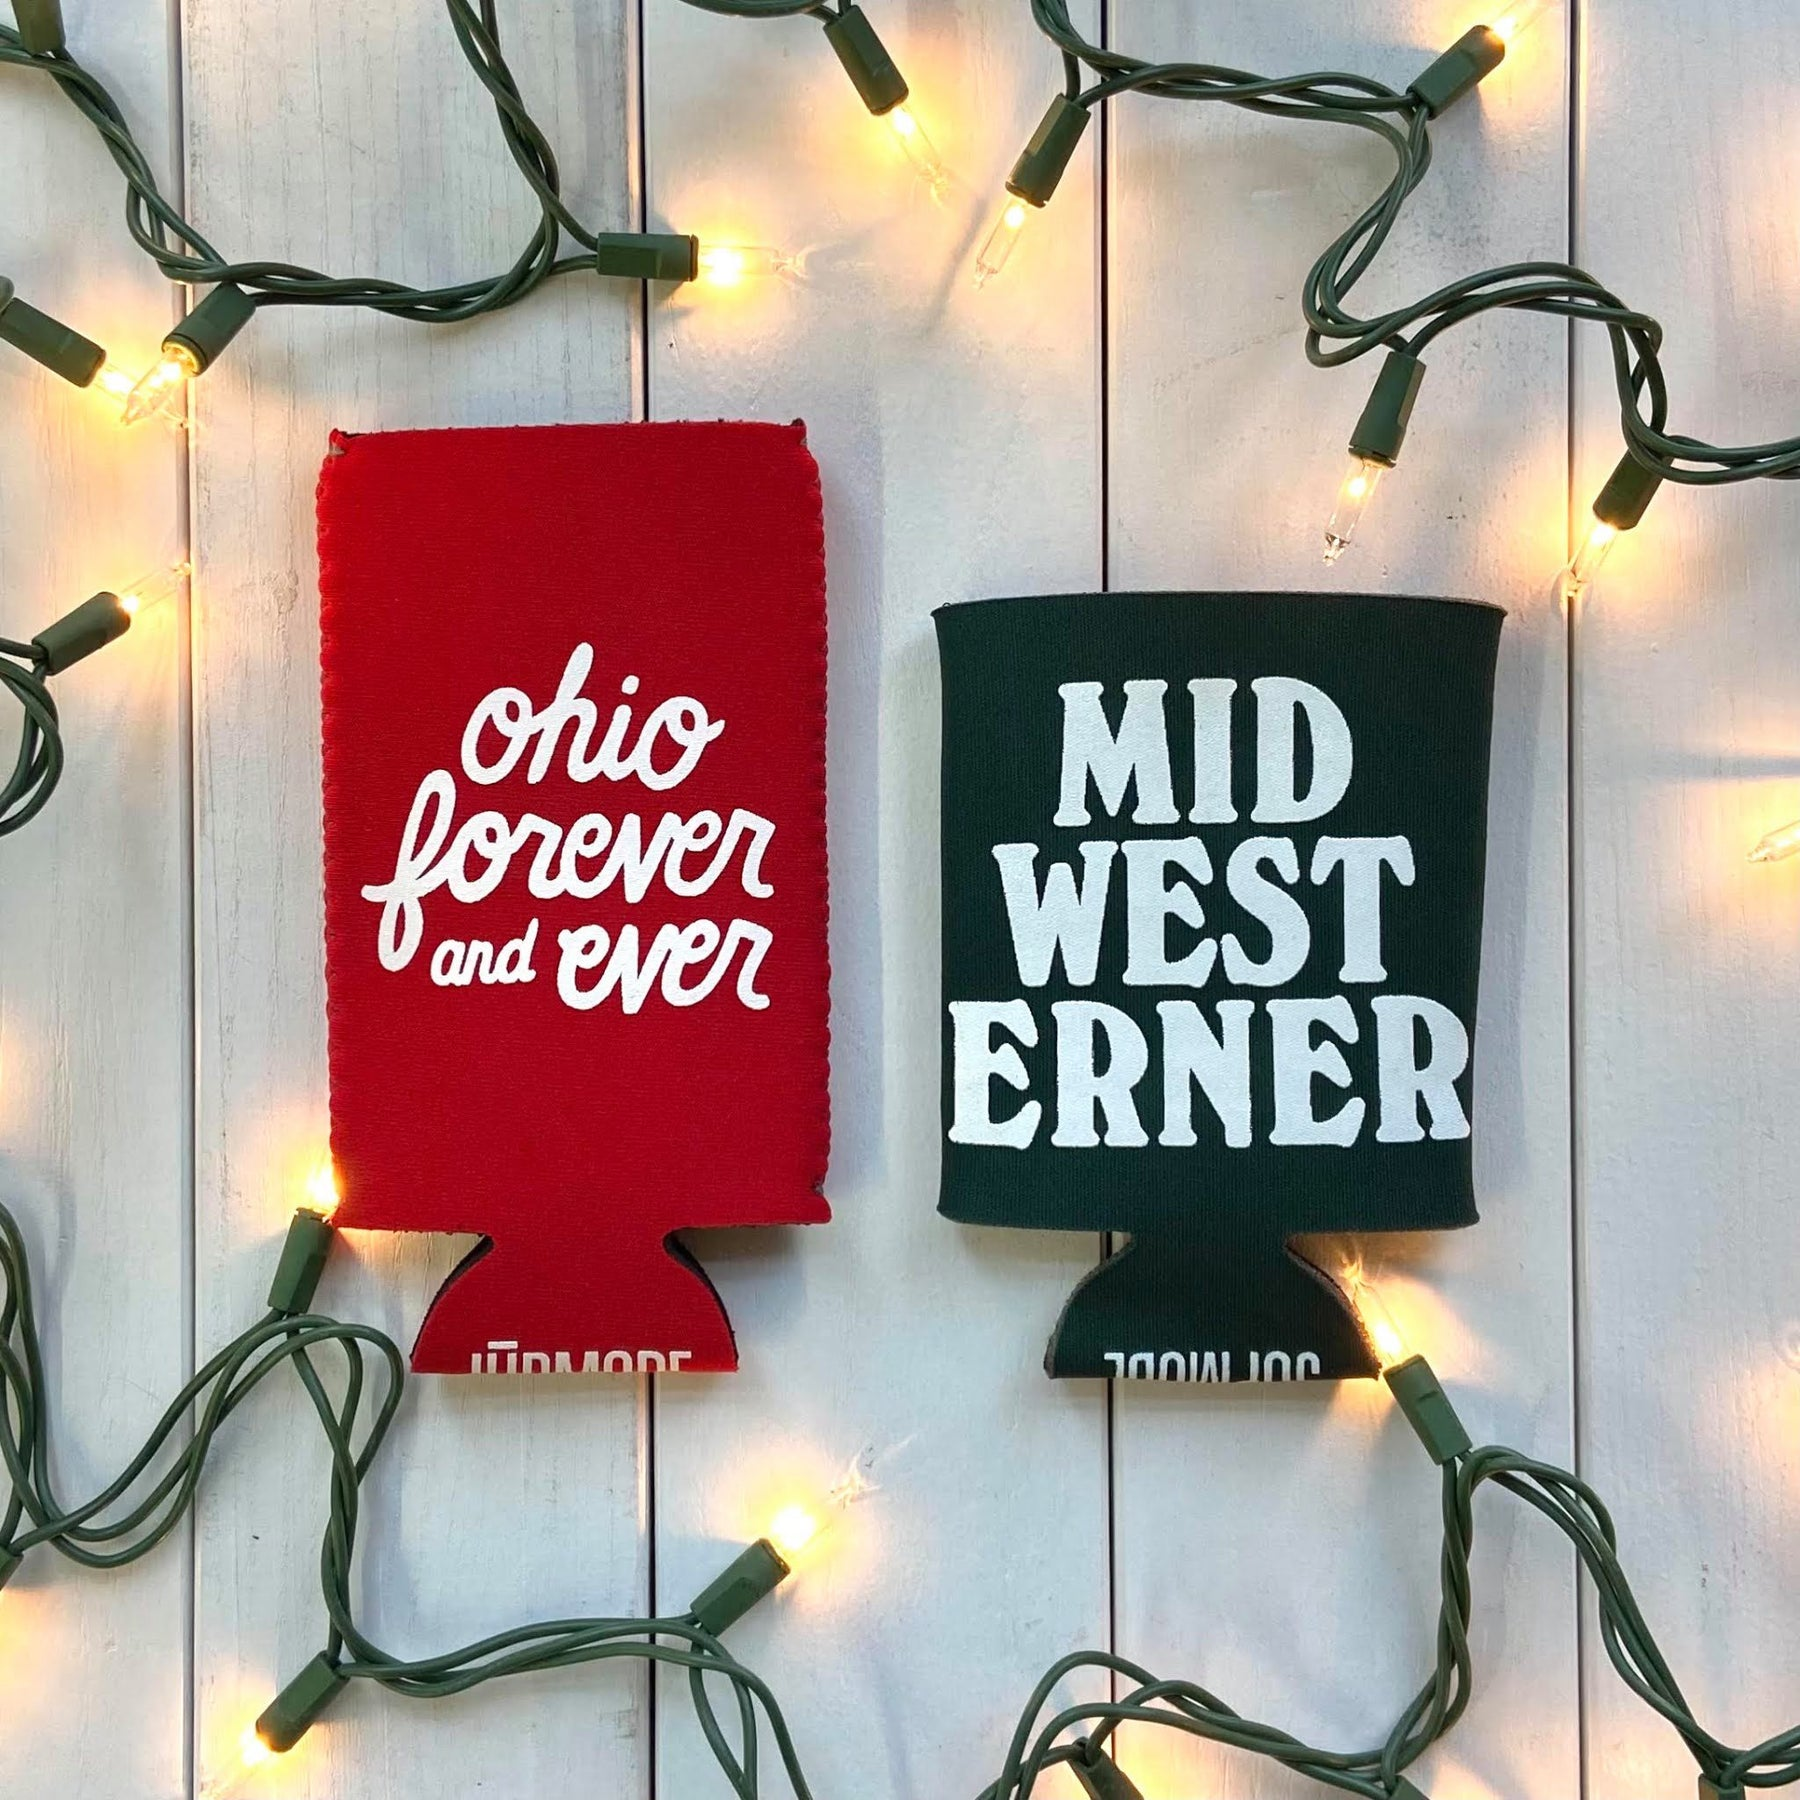 New Release: Ohio Forever and Ever and Midwesterner Koozie